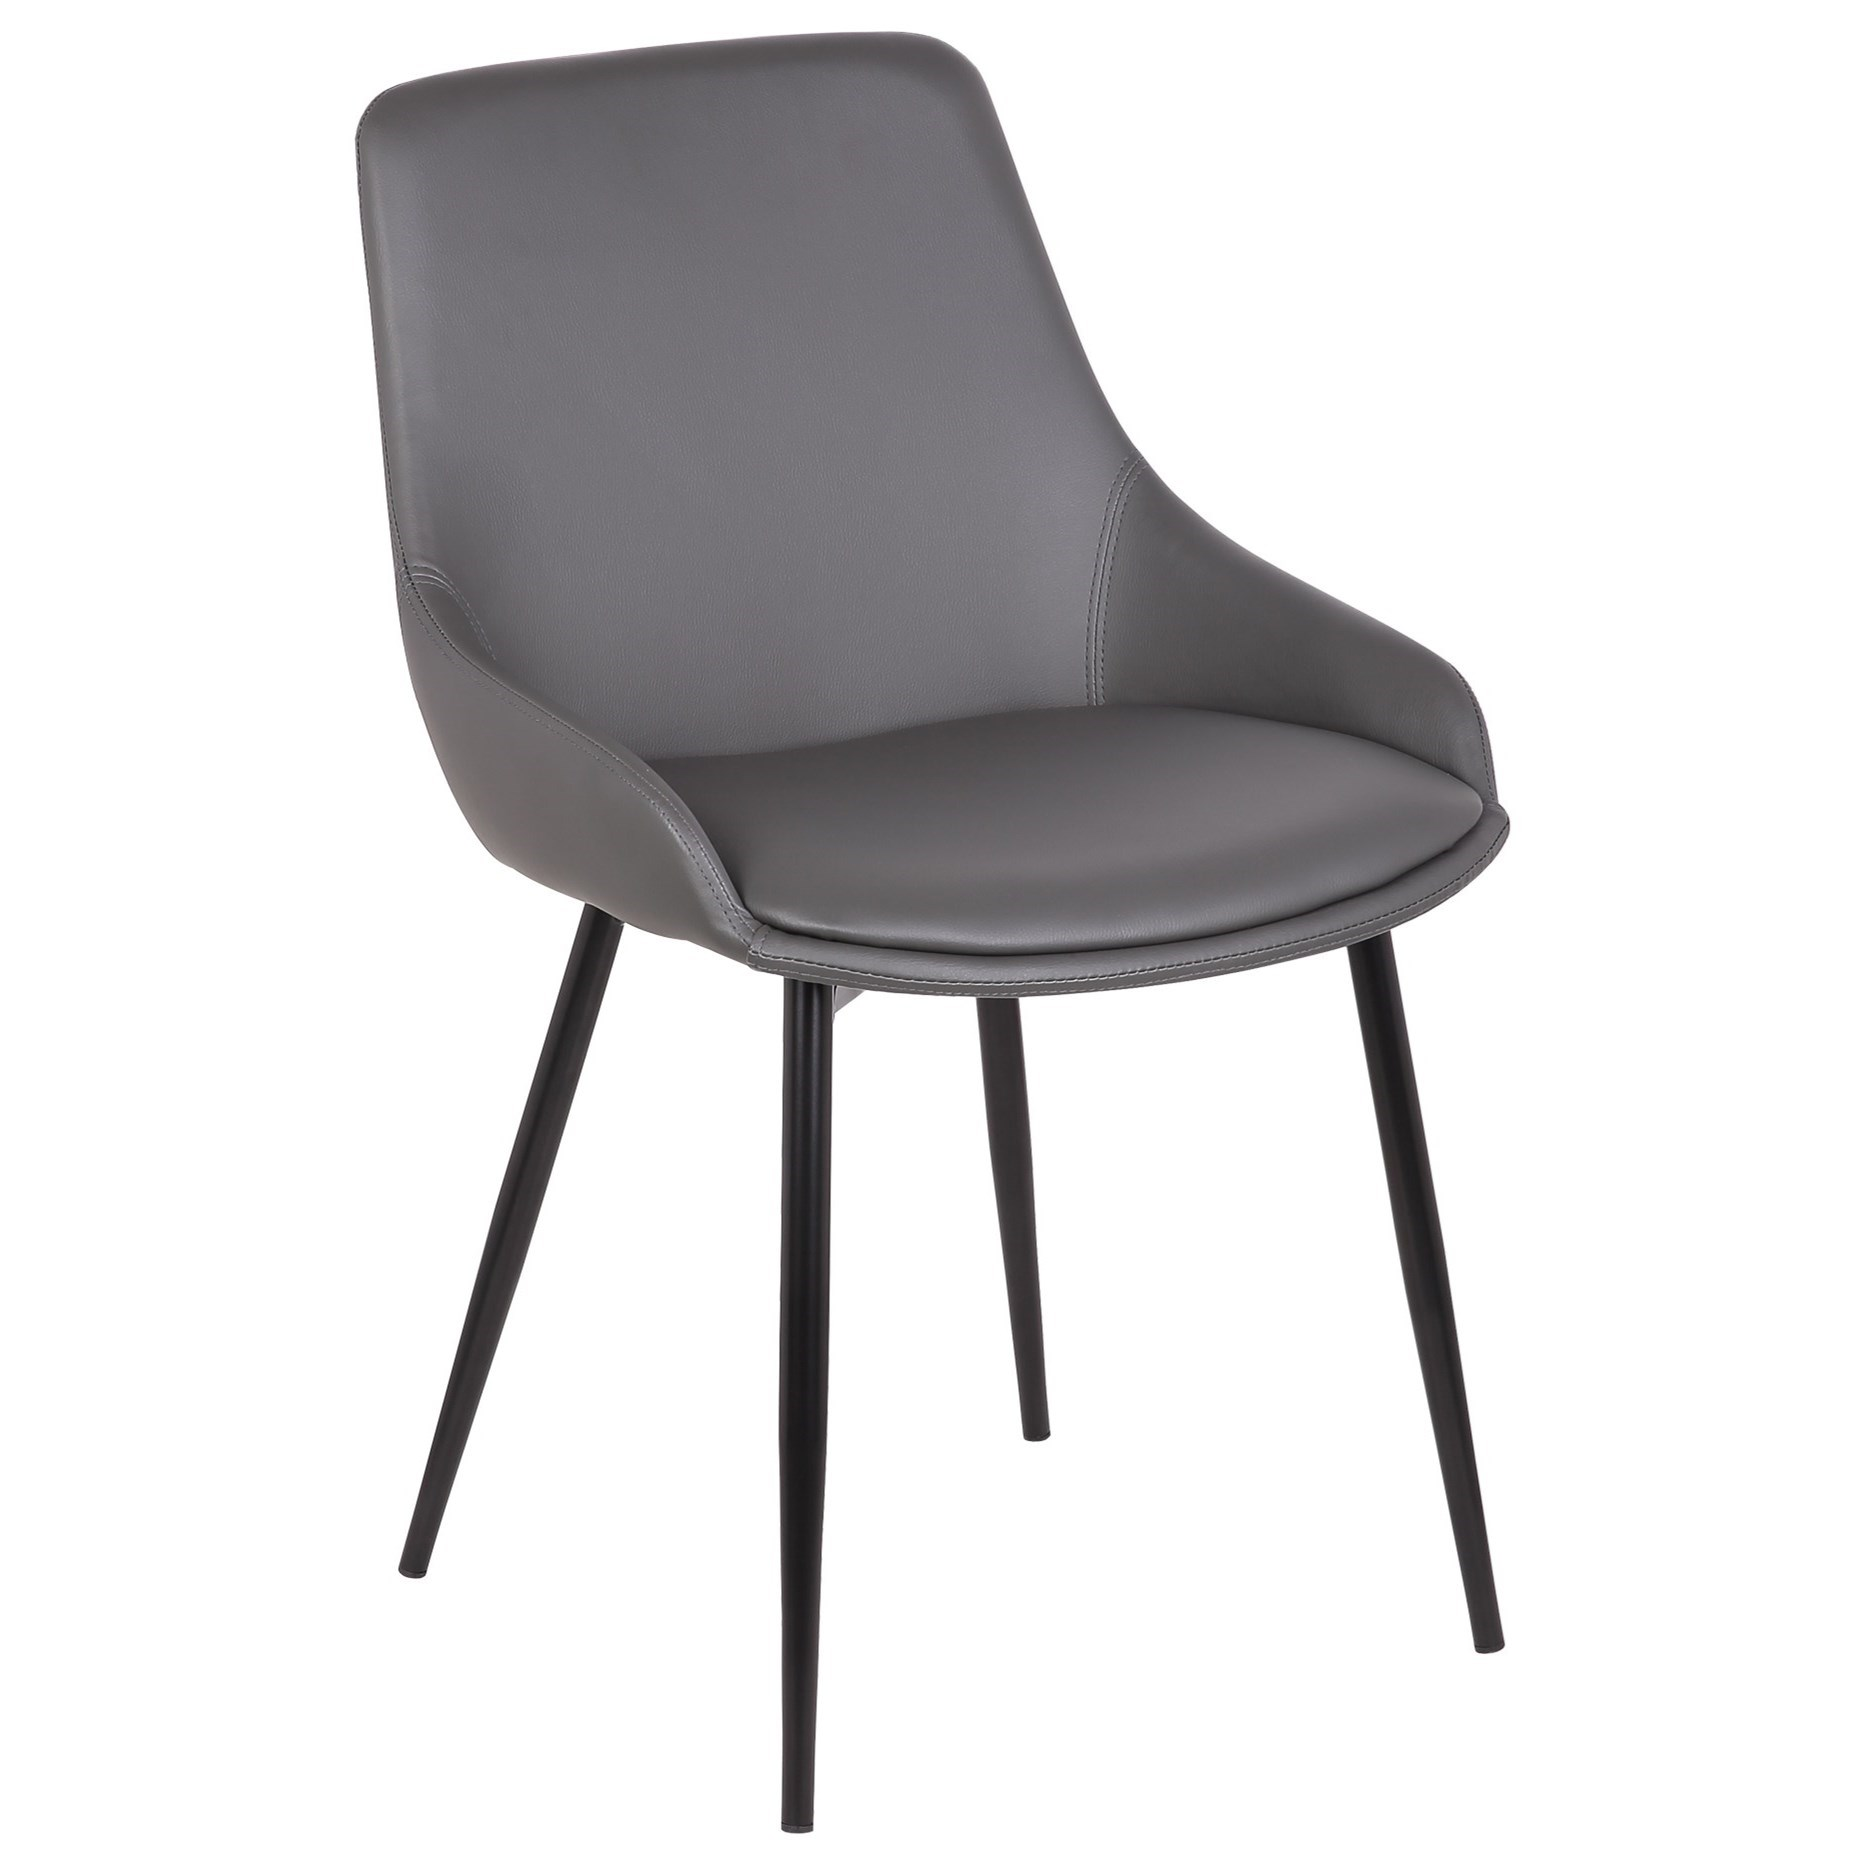 Mia Side Chair at Sadler's Home Furnishings